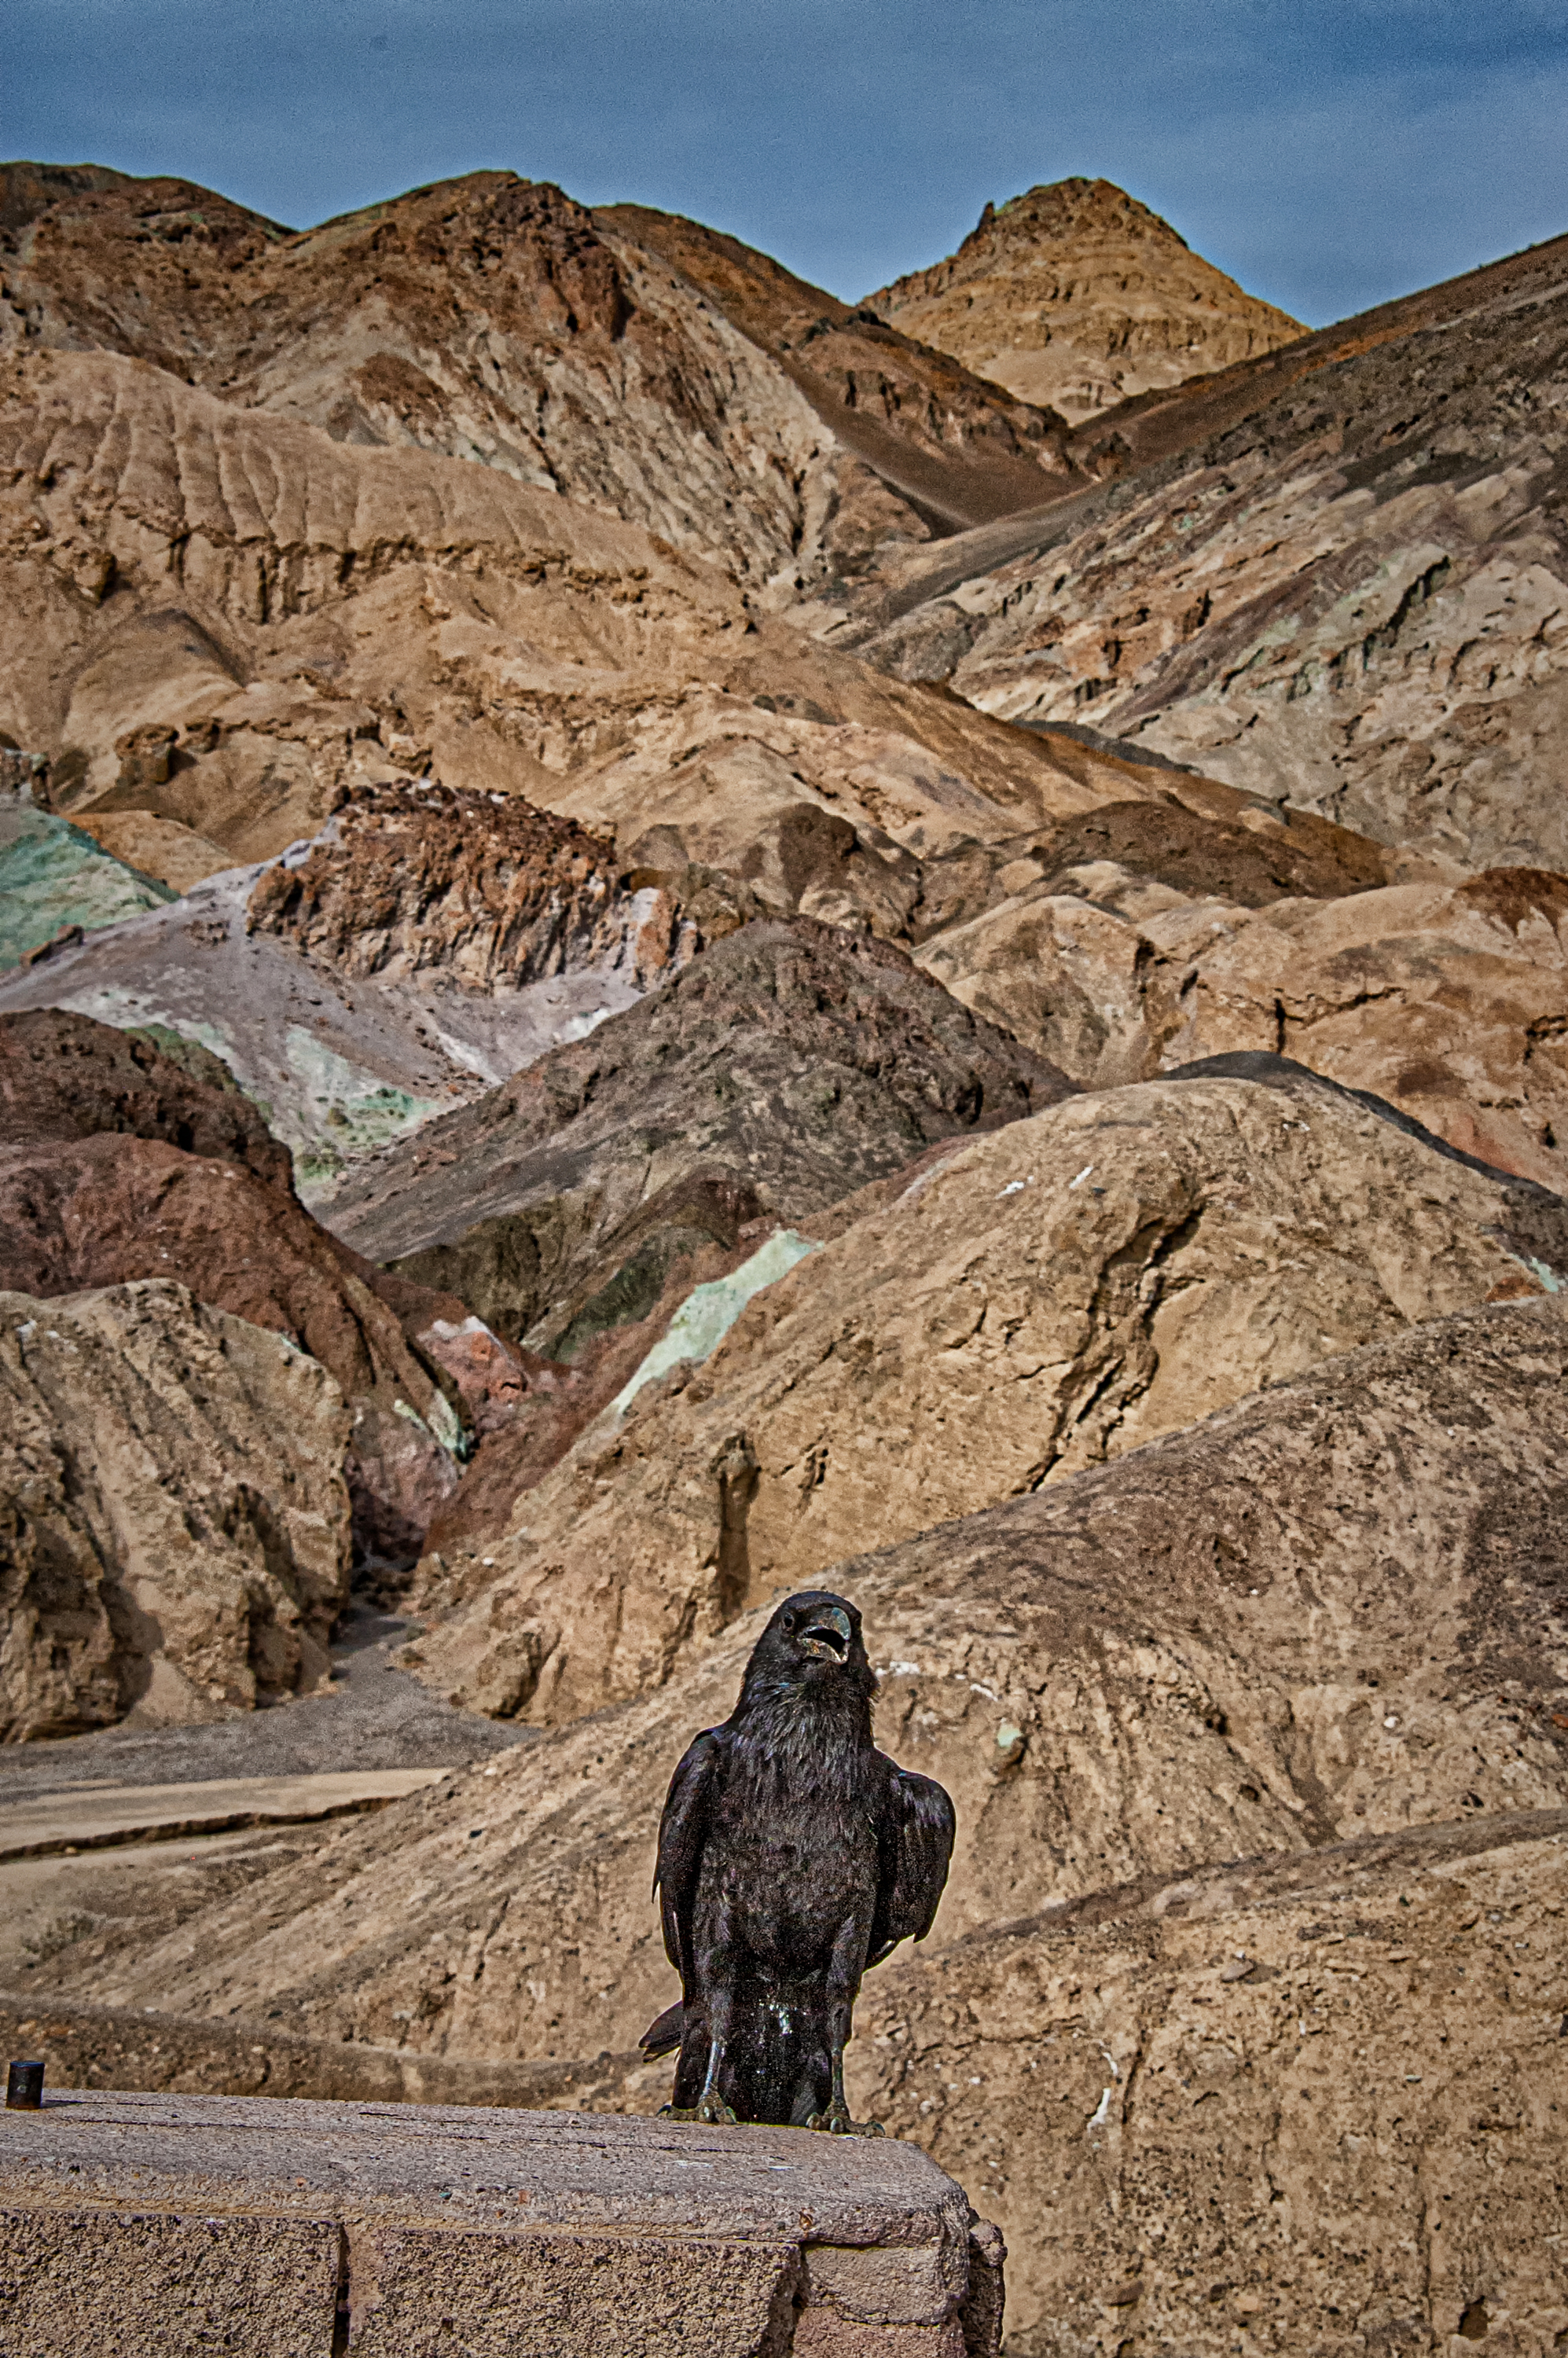 raven on a rock author bloy bruce death valley n